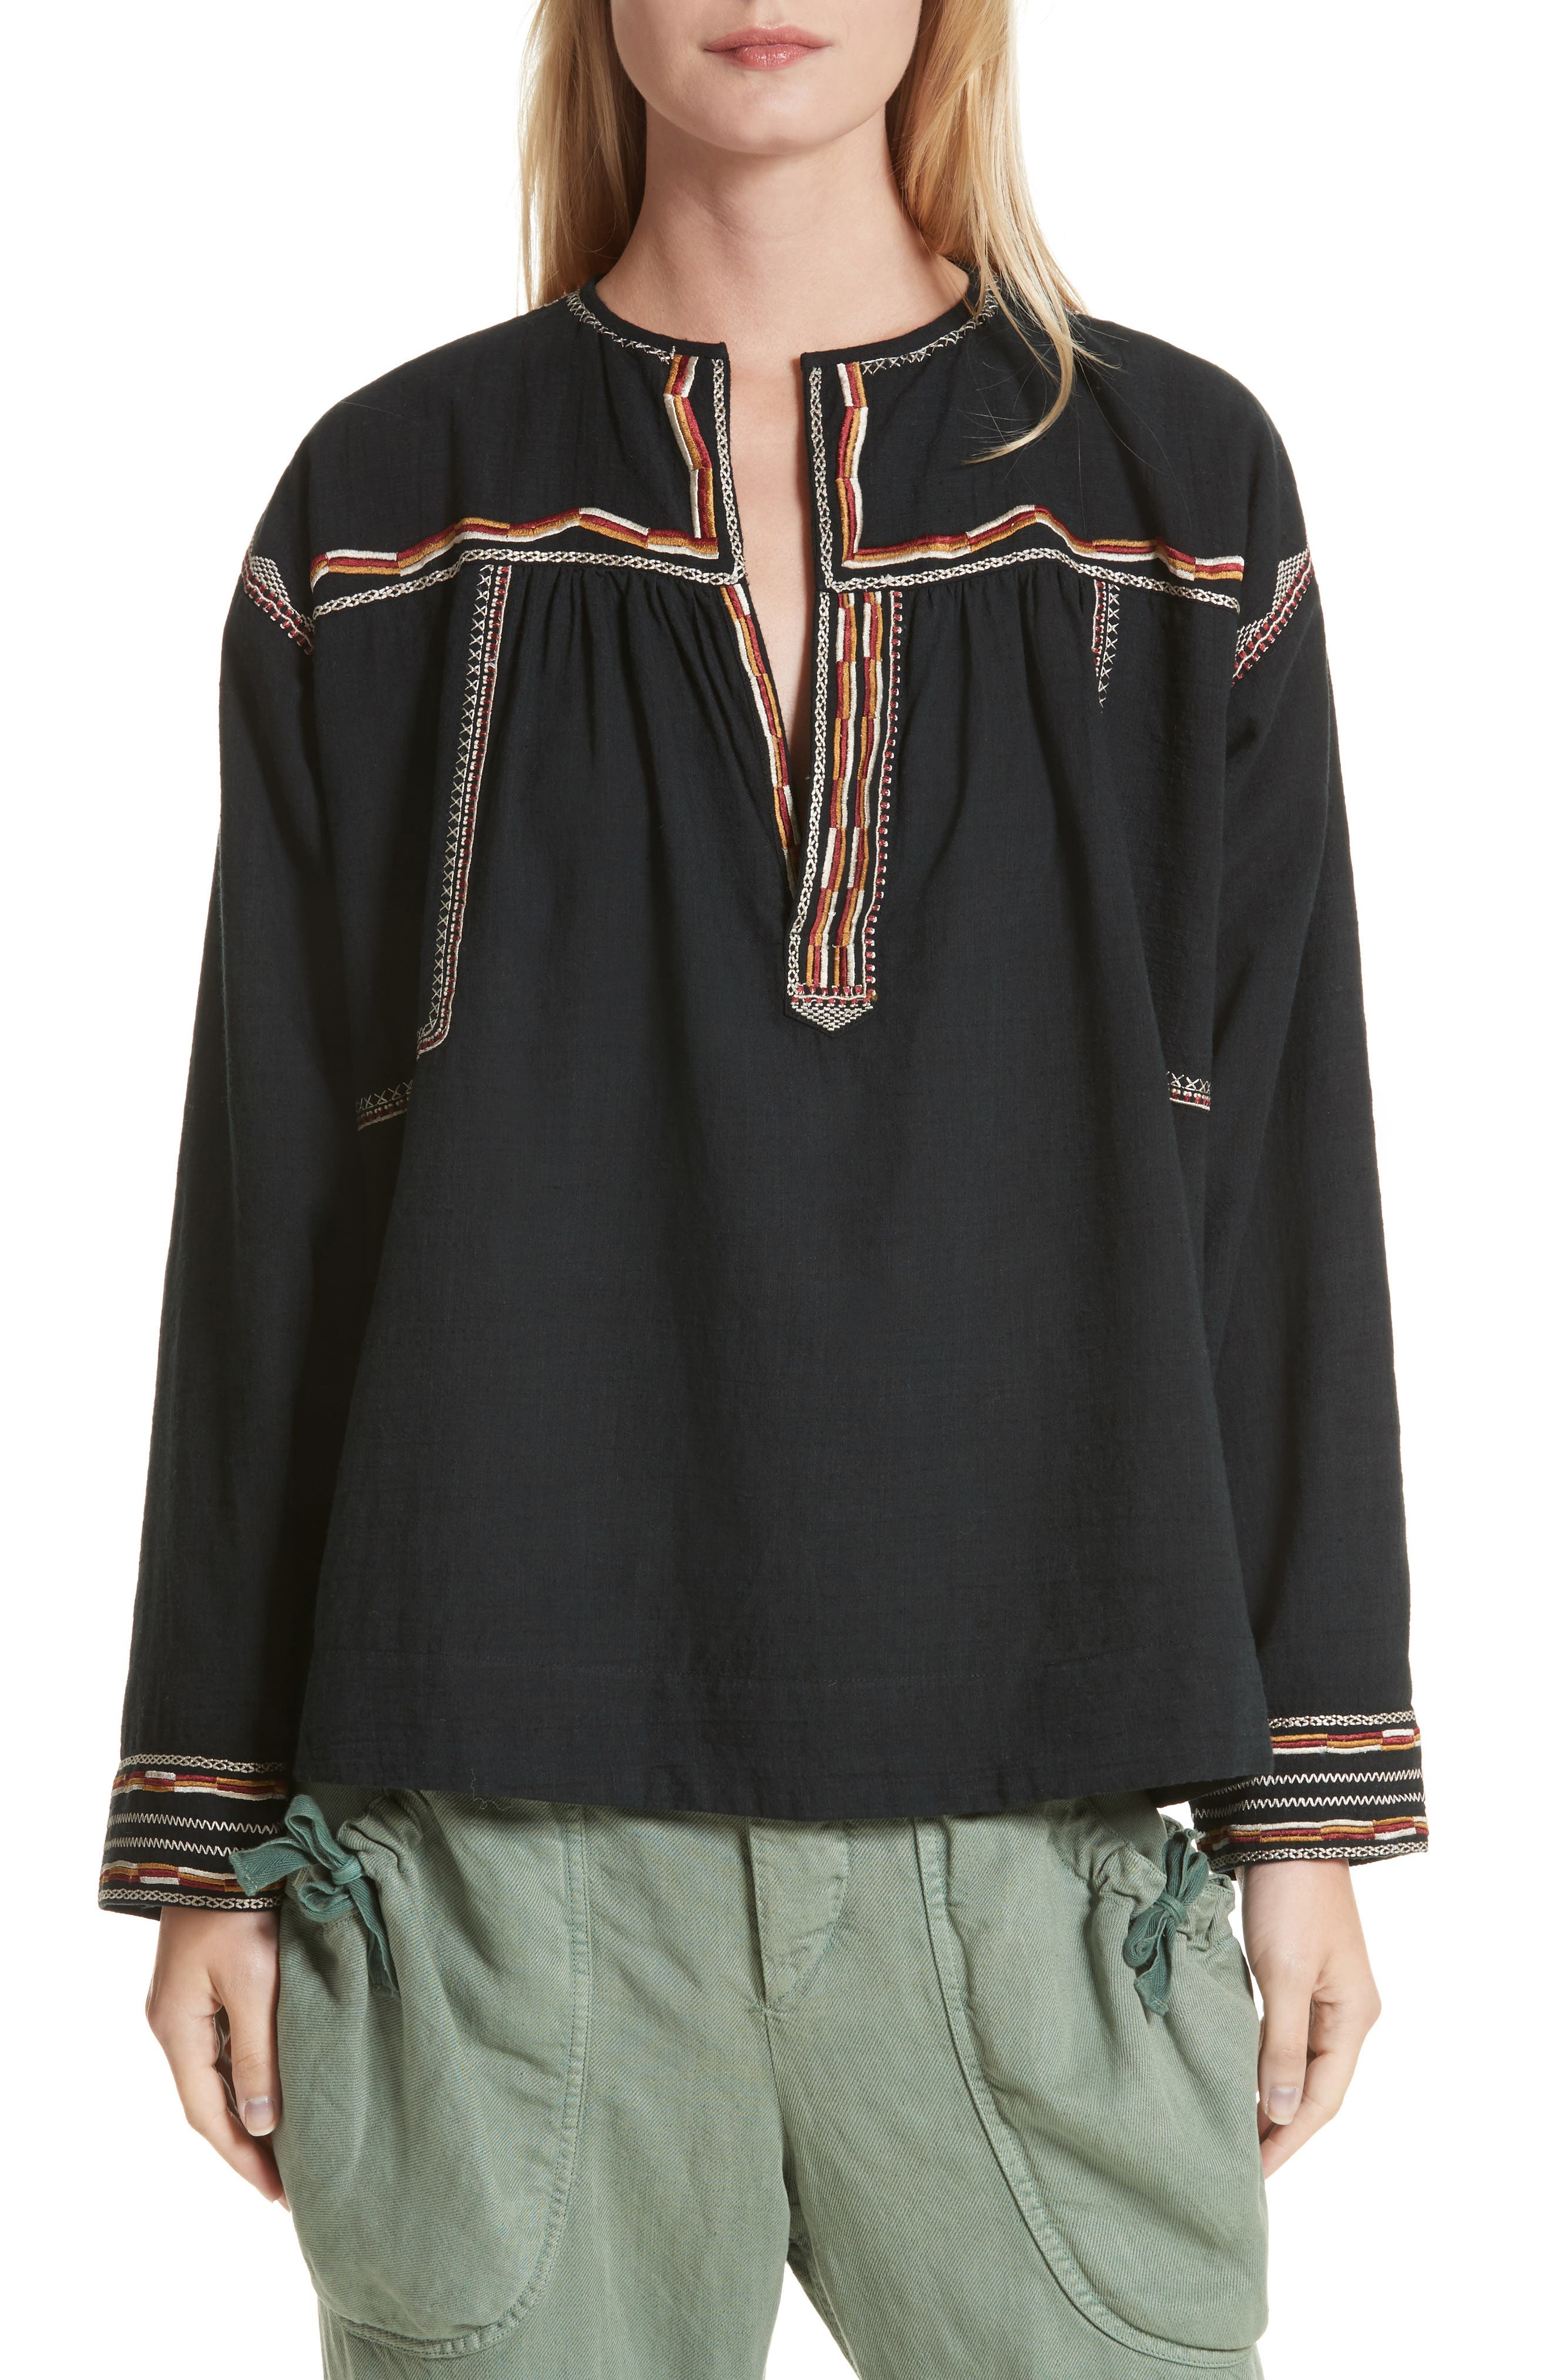 Isabel Marant Étoile Blicky Embroidered Top,                             Main thumbnail 1, color,                             001